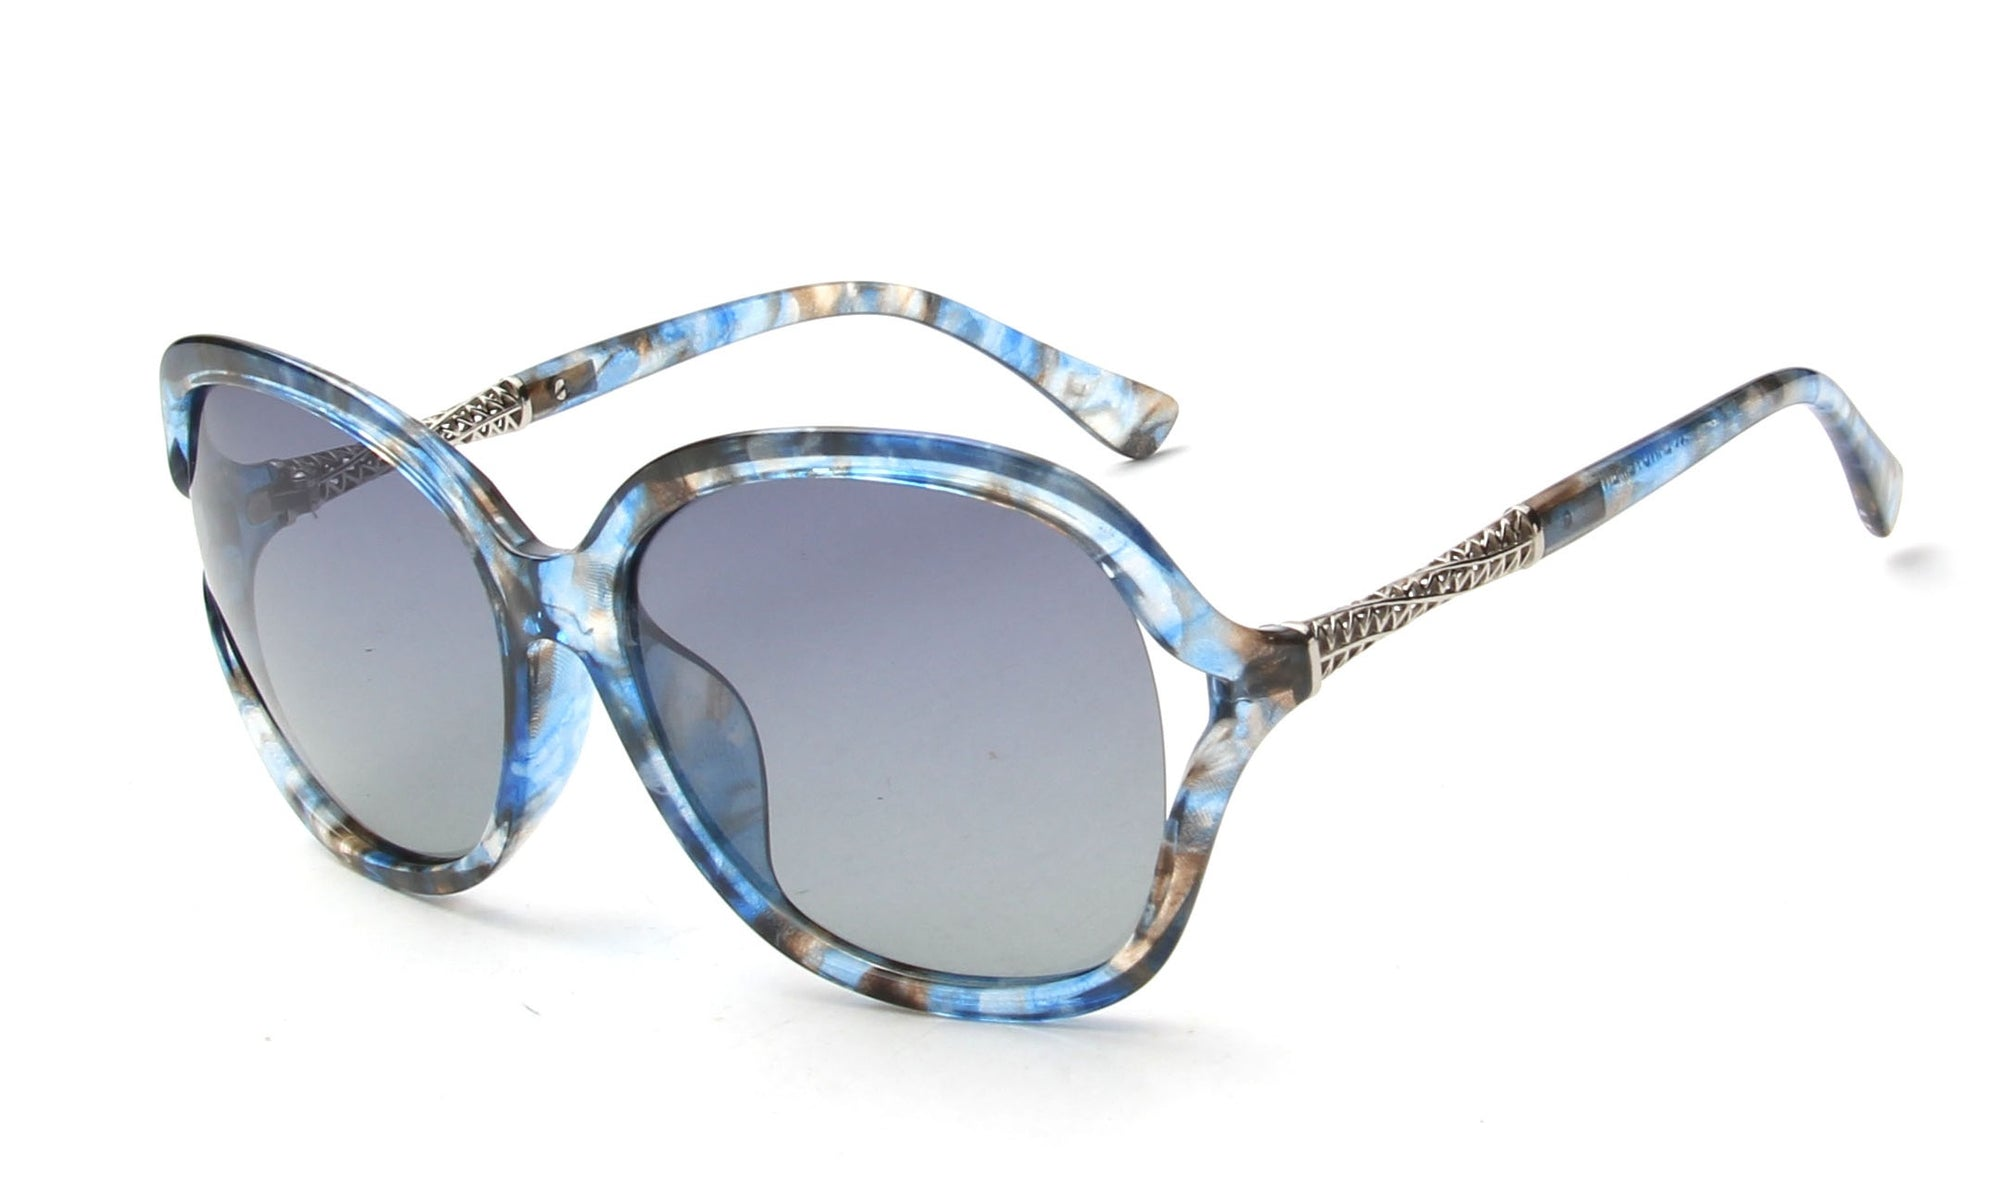 LAT-T30034 - Women Polarized Oversize Fashion Sunglasses - Wholesale Sunglasses and glasses